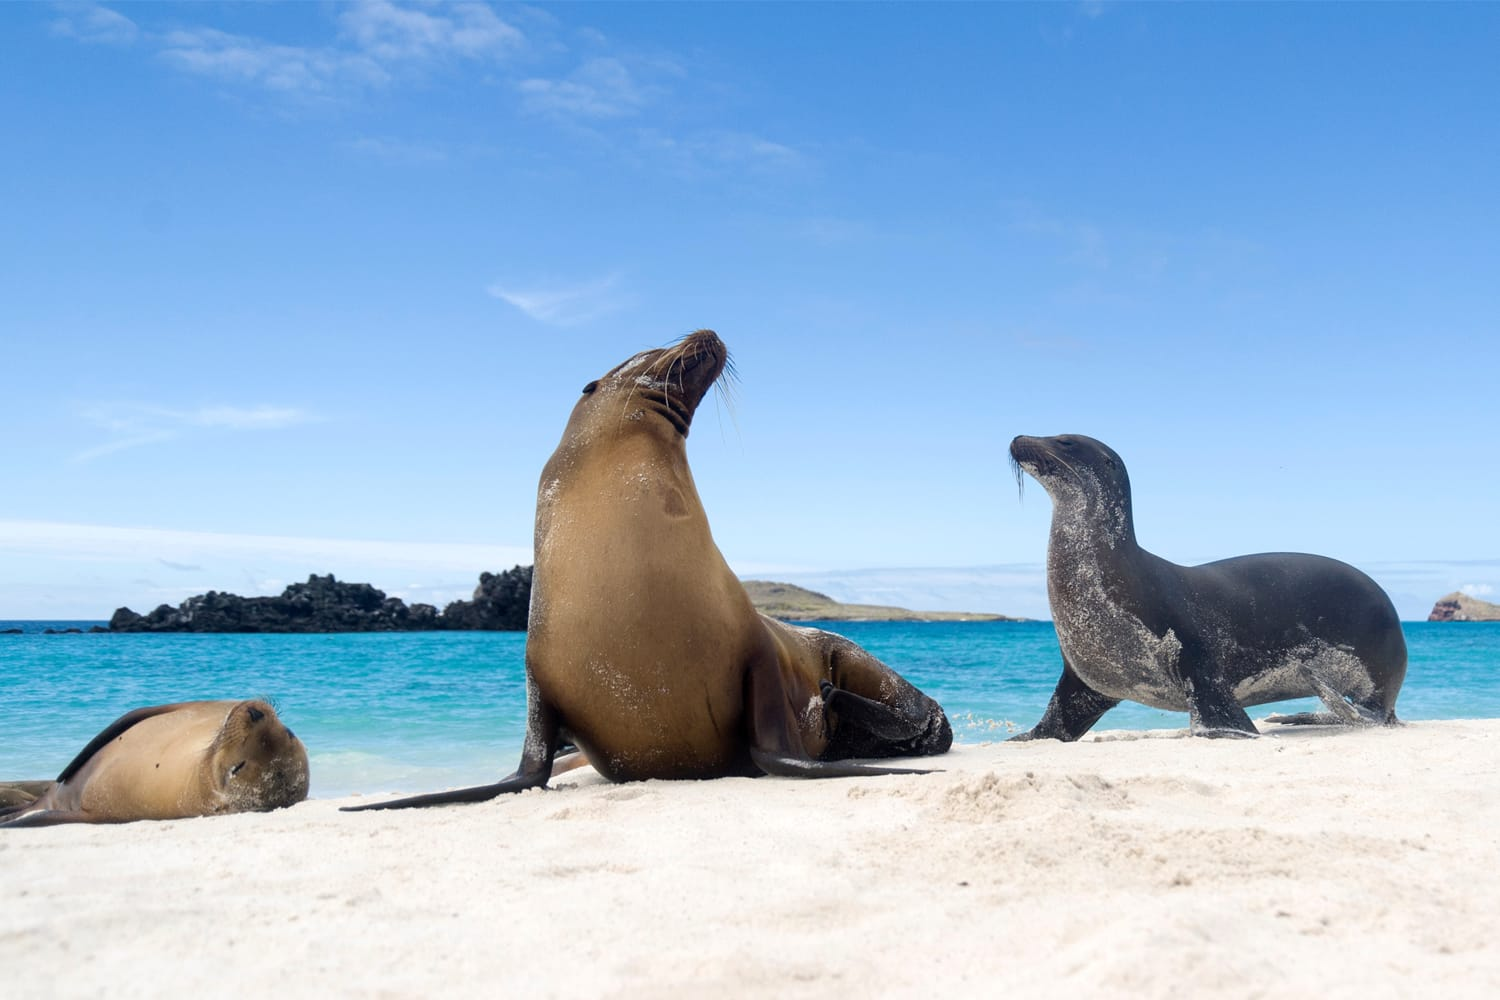 Galapagos sea lions (Zalophus californianus wollebacki) on the beach, Galapagos Islands, Ecuador